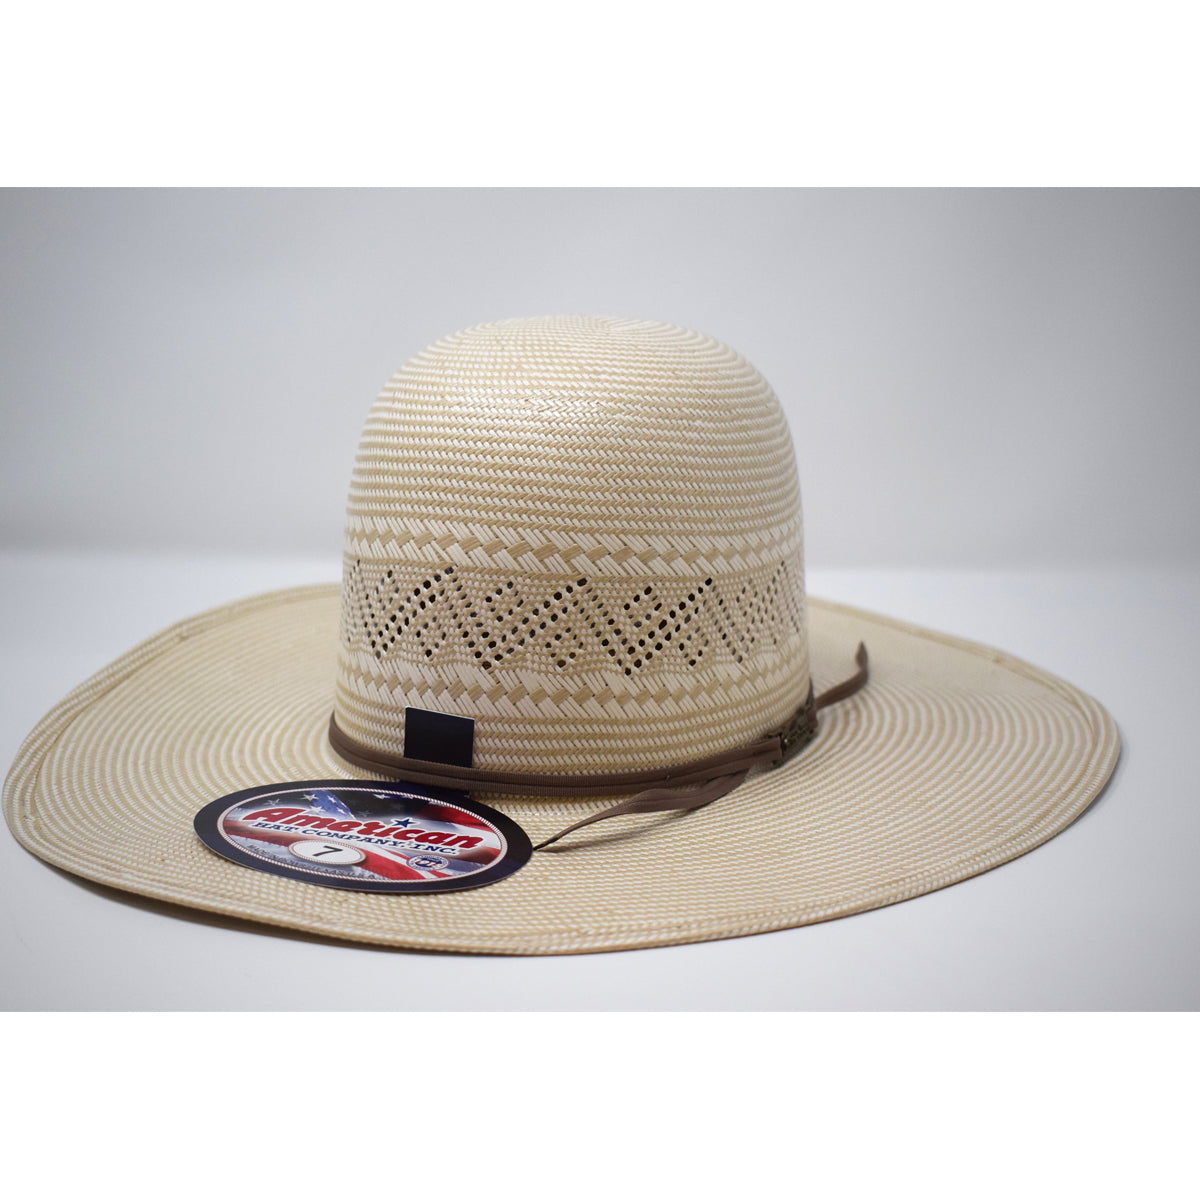 "American Hat Co. 4 1/4"" Brim Light Brown Ribbon Western Straw Hat"